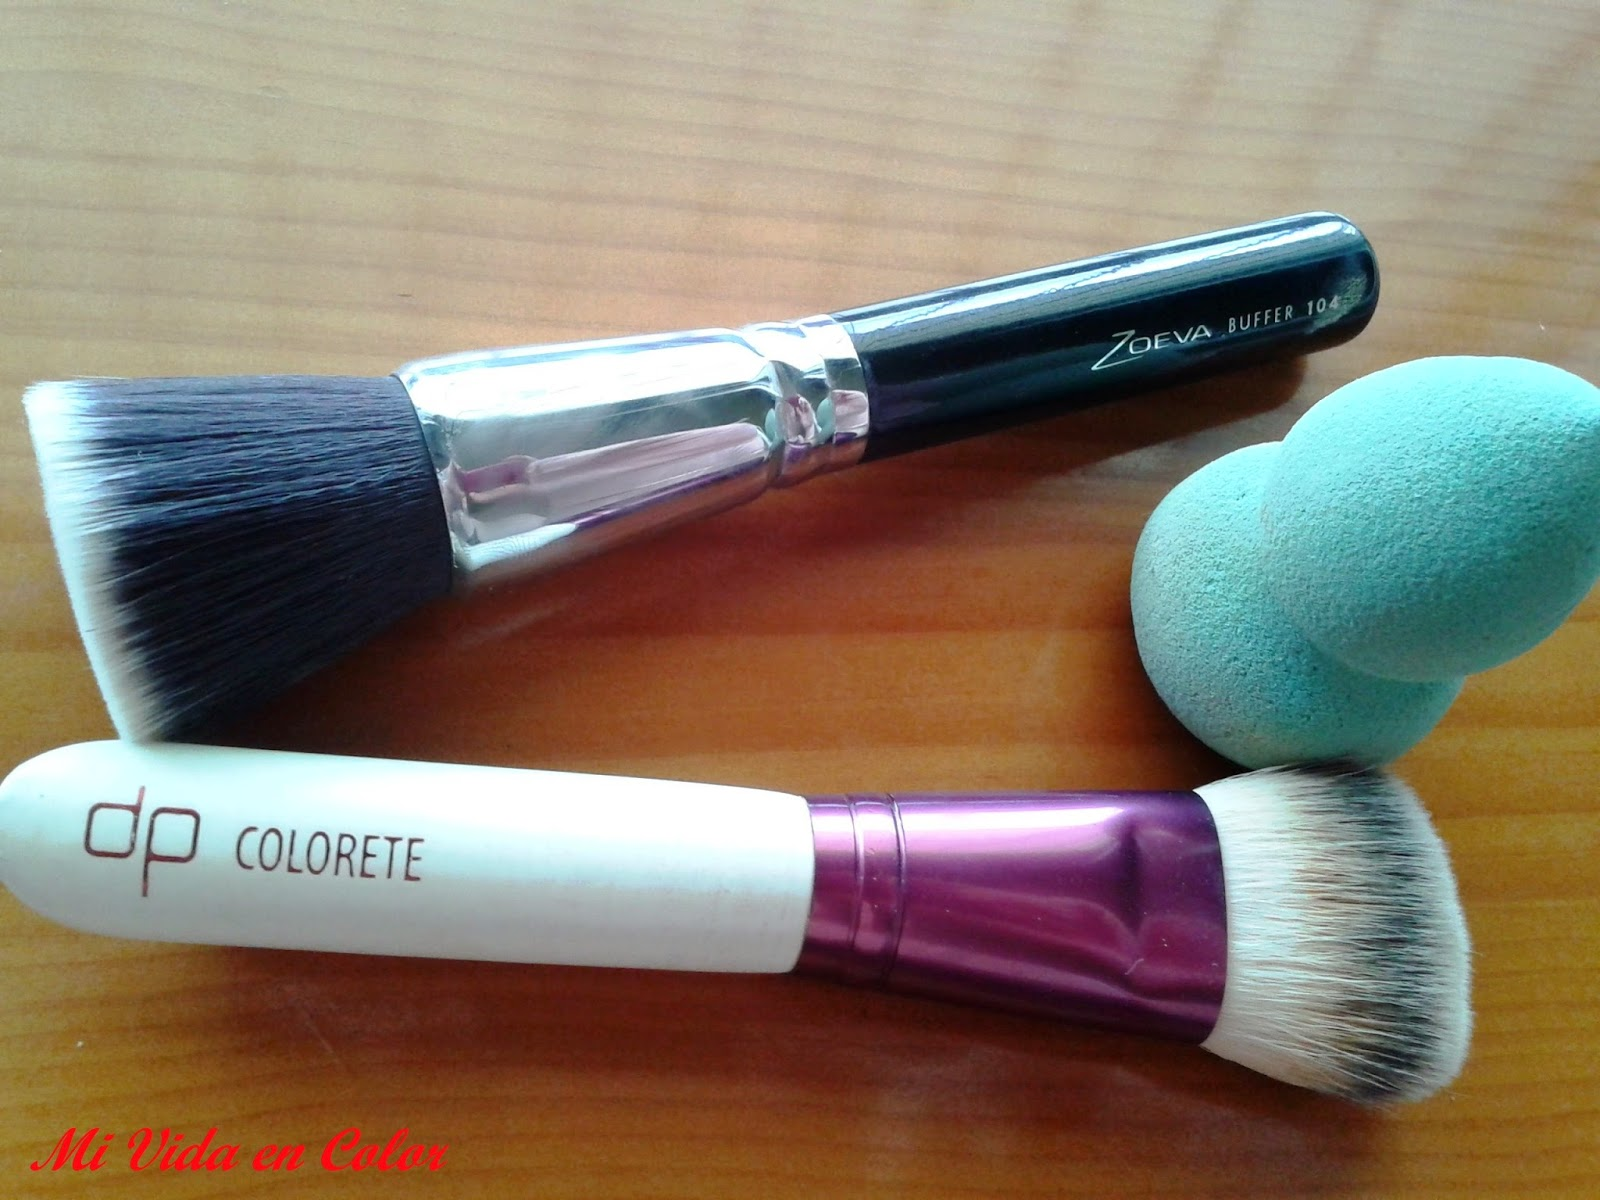 brushes, brochas, deliplus, colorete, zoeva, 104 buffer, make up blender, mi vida en color